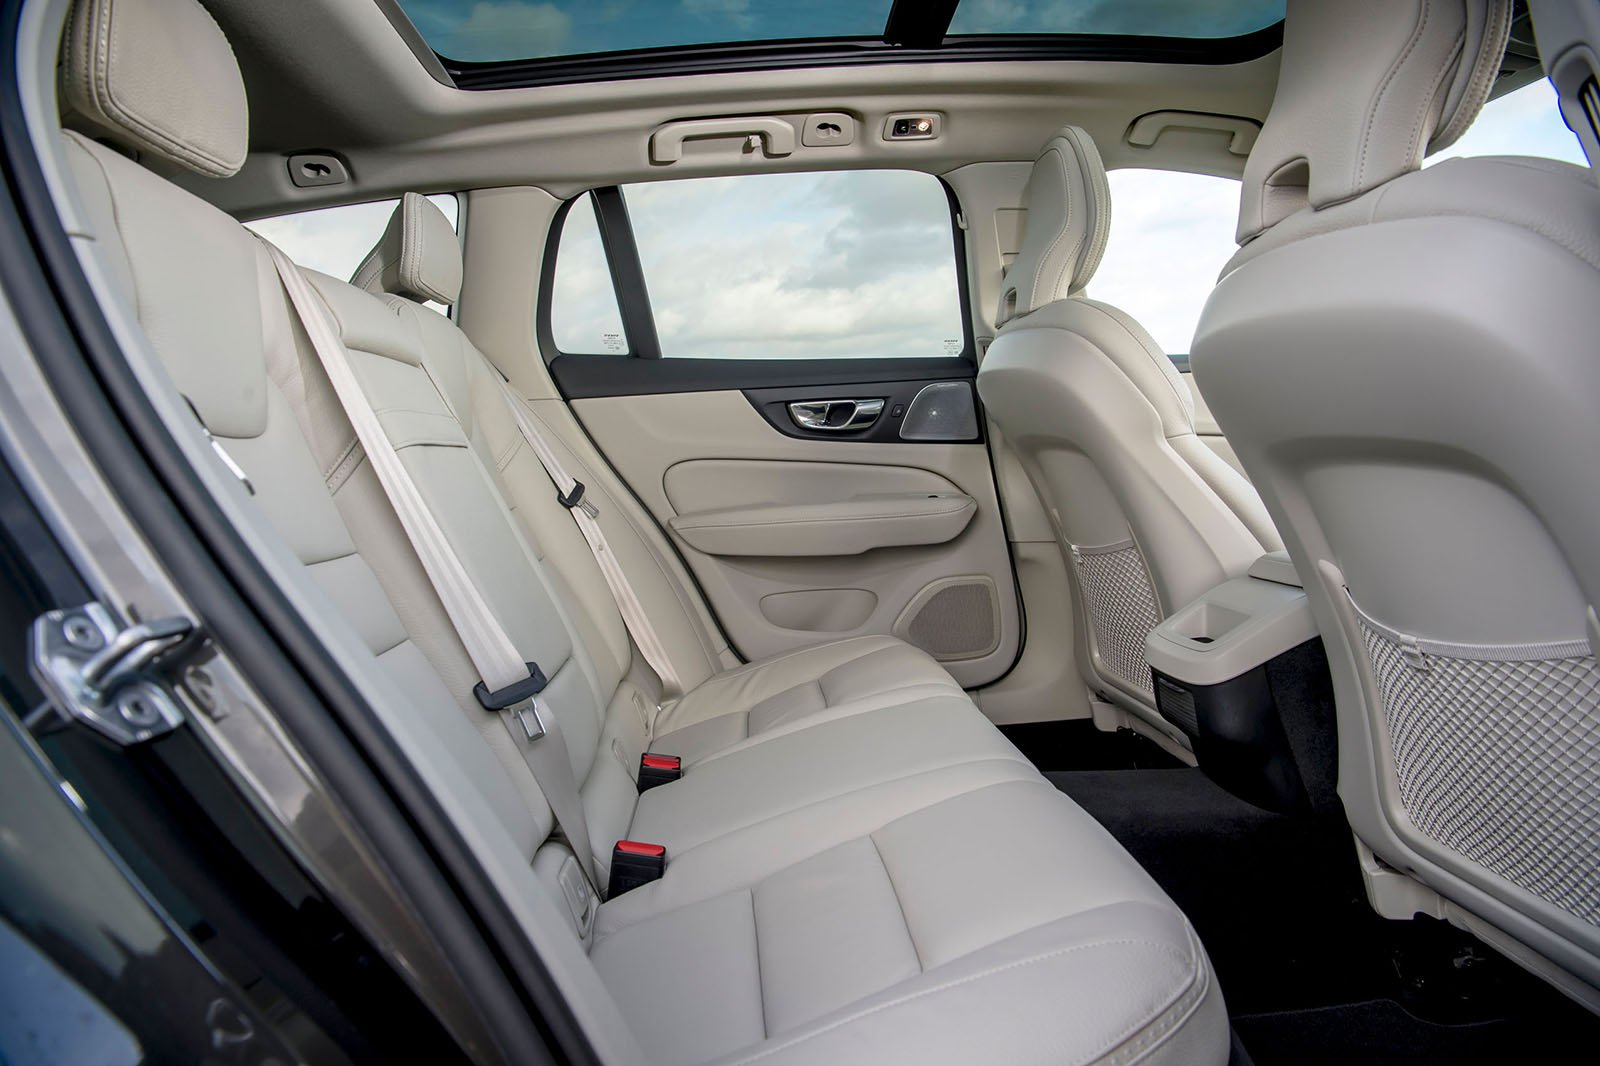 Volvo V60 CC 2019 rear seats